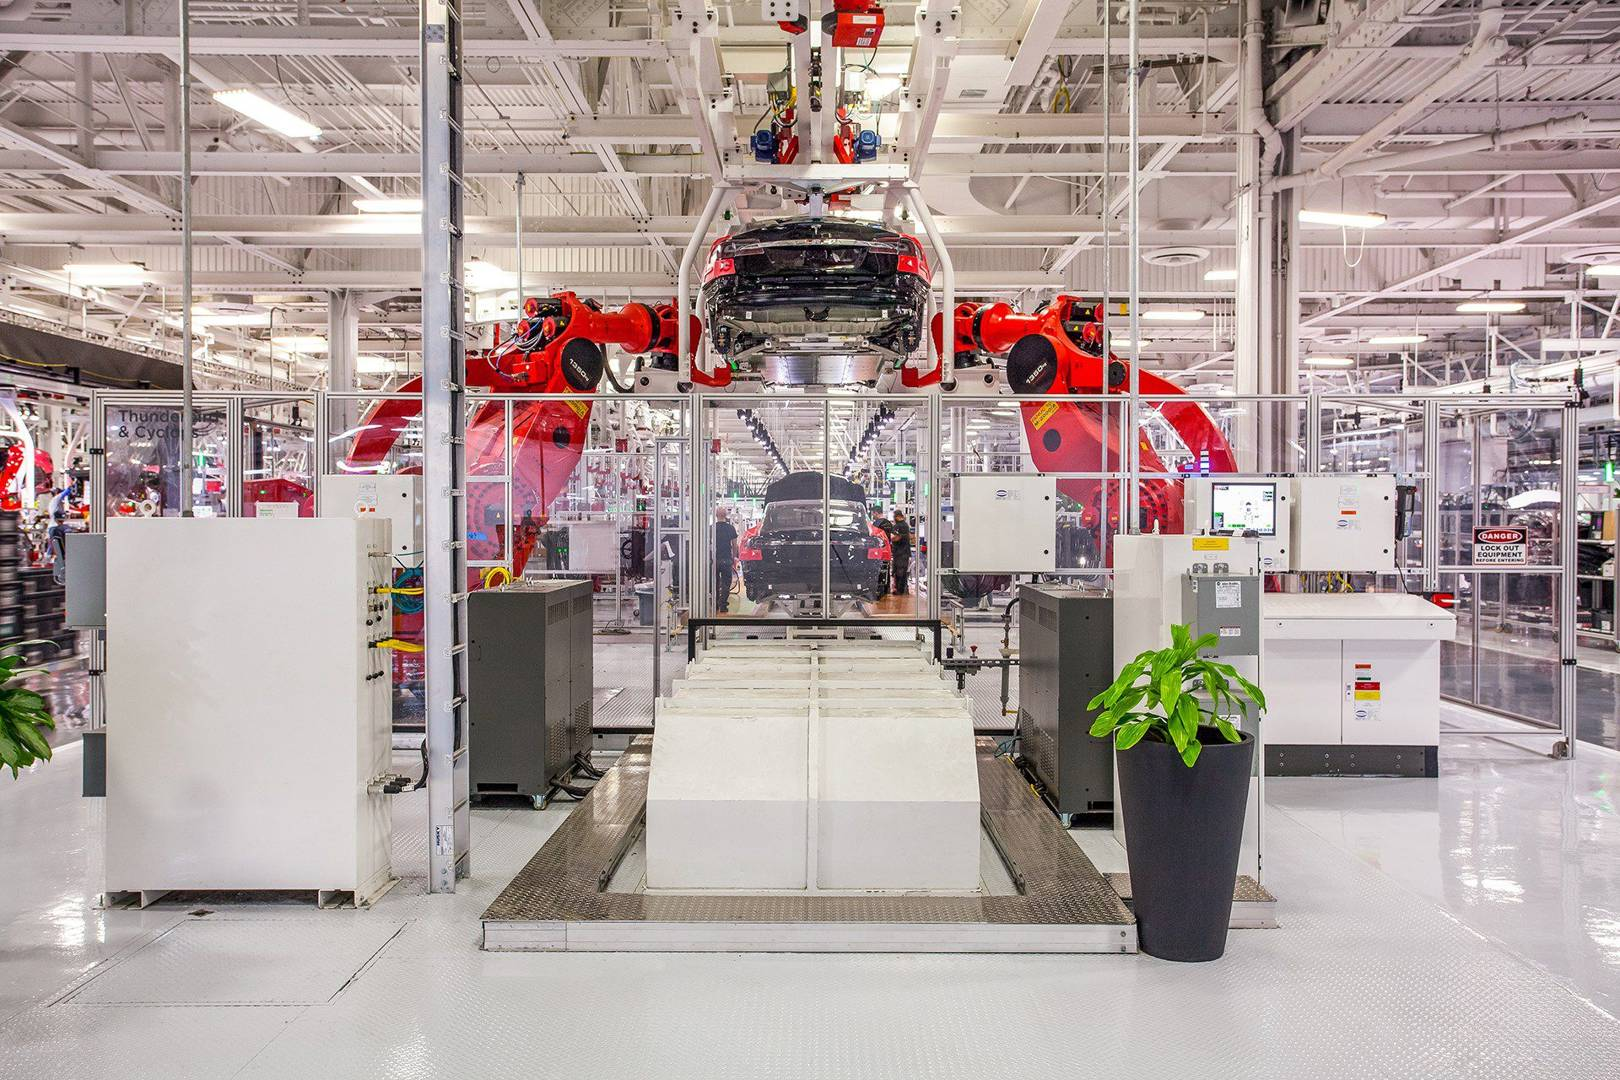 Tuesday briefing: Tesla fined for mishandling hazardous waste